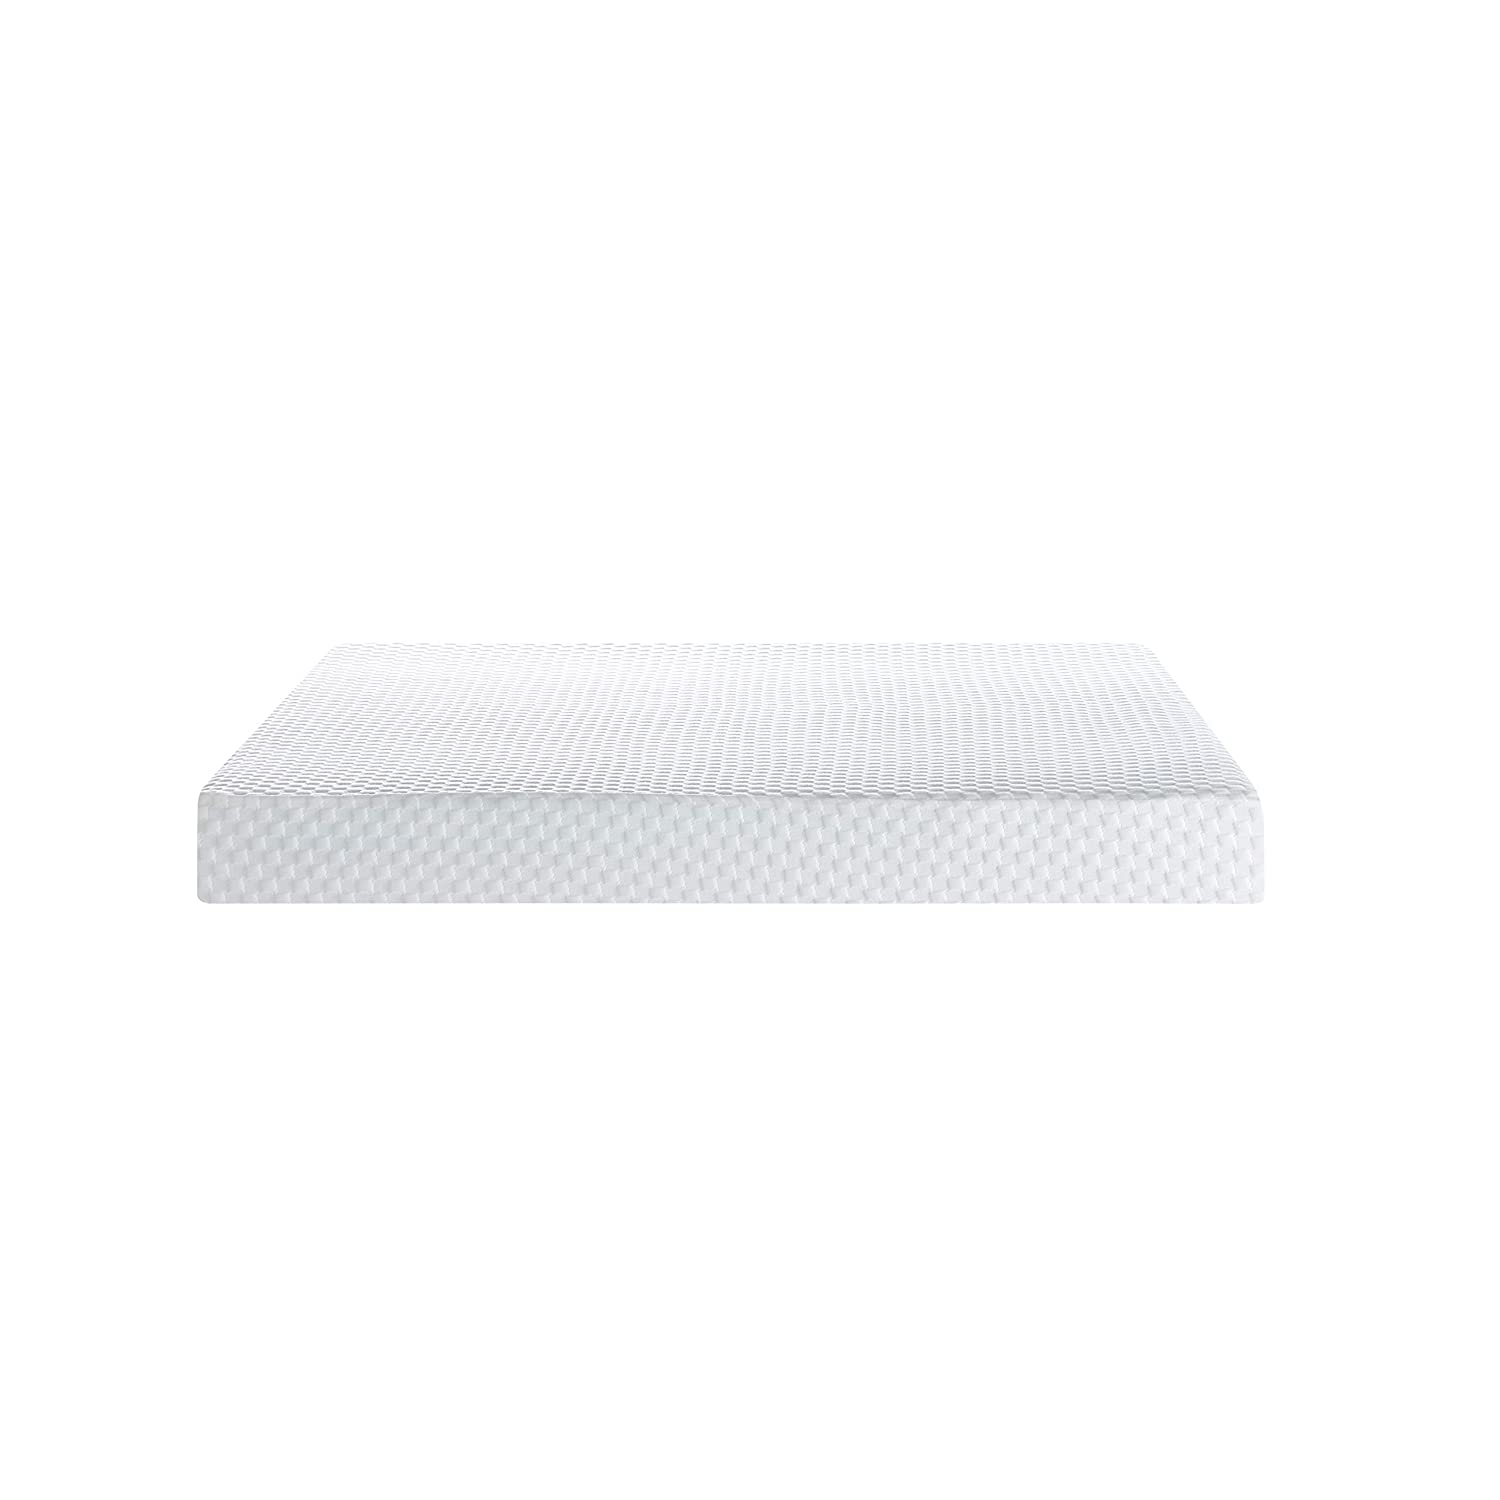 Merax 6 Inch Cooling-Gel Memory Foam Mattress - Medium Firm - CertiPUR-US Certified Contouring Comfort Foam, Pressure Point Relief, Low Motion Transfer, Easy to Set Up - 10 Year Warranty, King Size